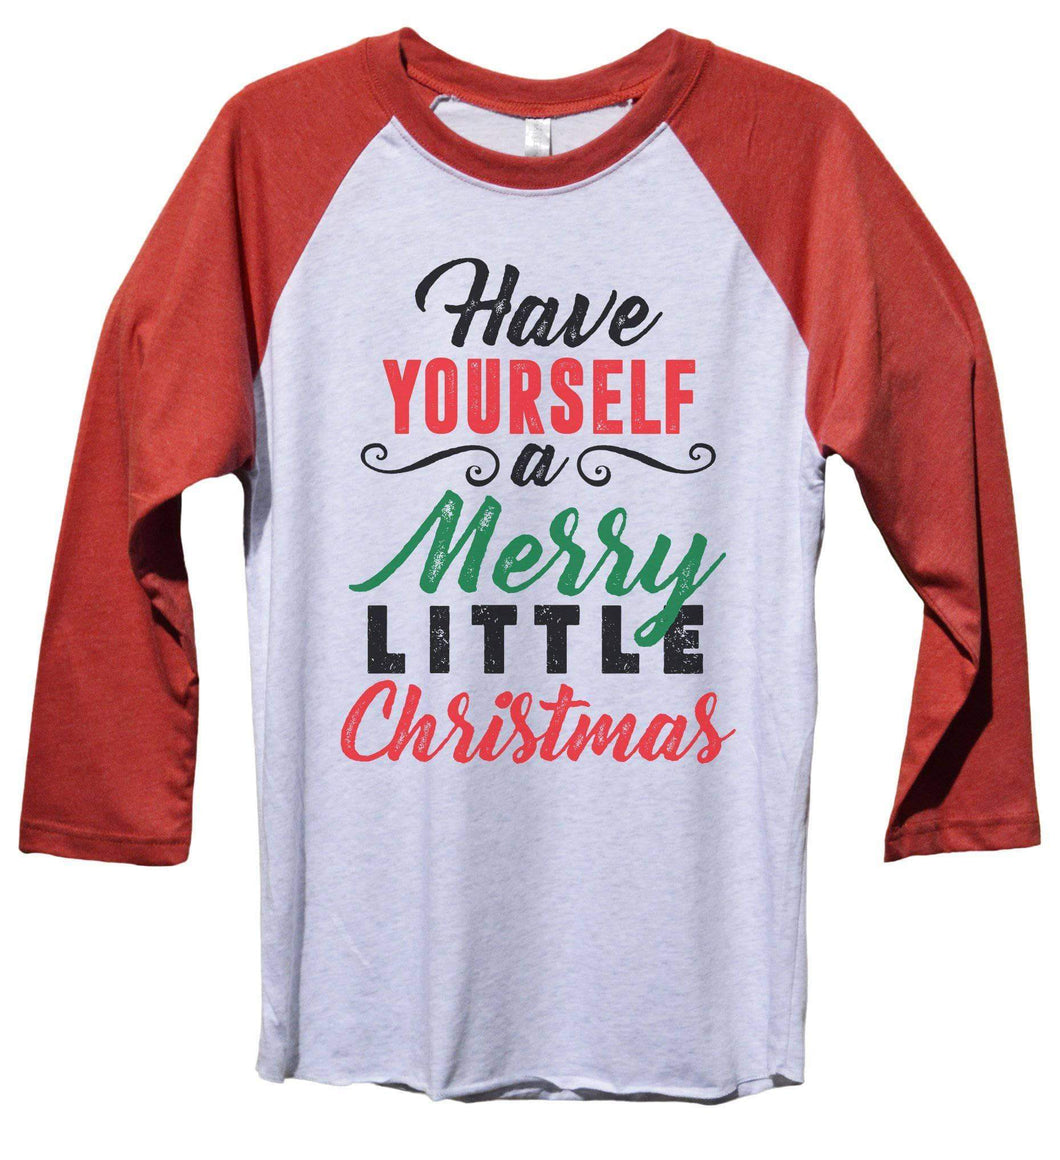 Have Yourself A Merry Little Christmas Funny Christmas - Unisex Baseball Tee Mens And Womens  Womens Tank Tops